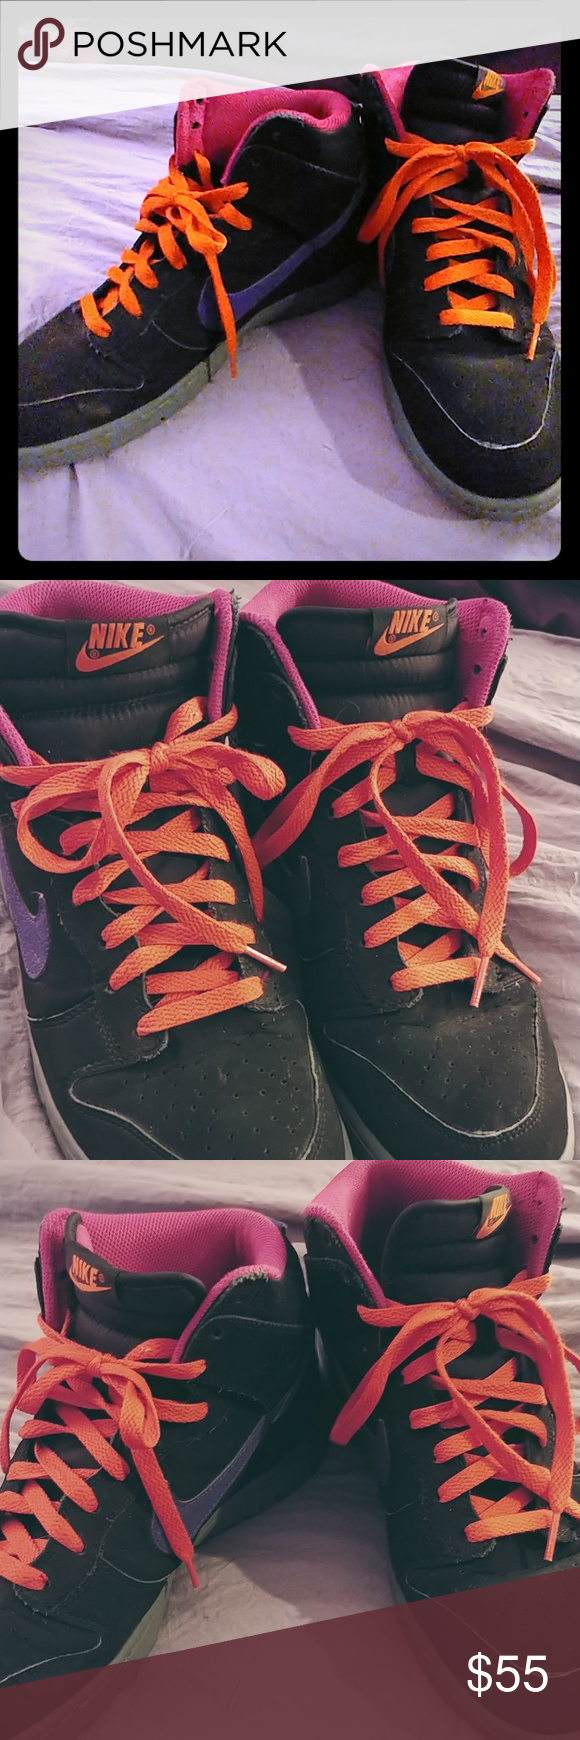 best authentic 32f60 741e6 Nike SB Dunk high Mens 9 Black court purple Electric orange colorway.pre  owned Very good condition Nike Shoes Sneakers